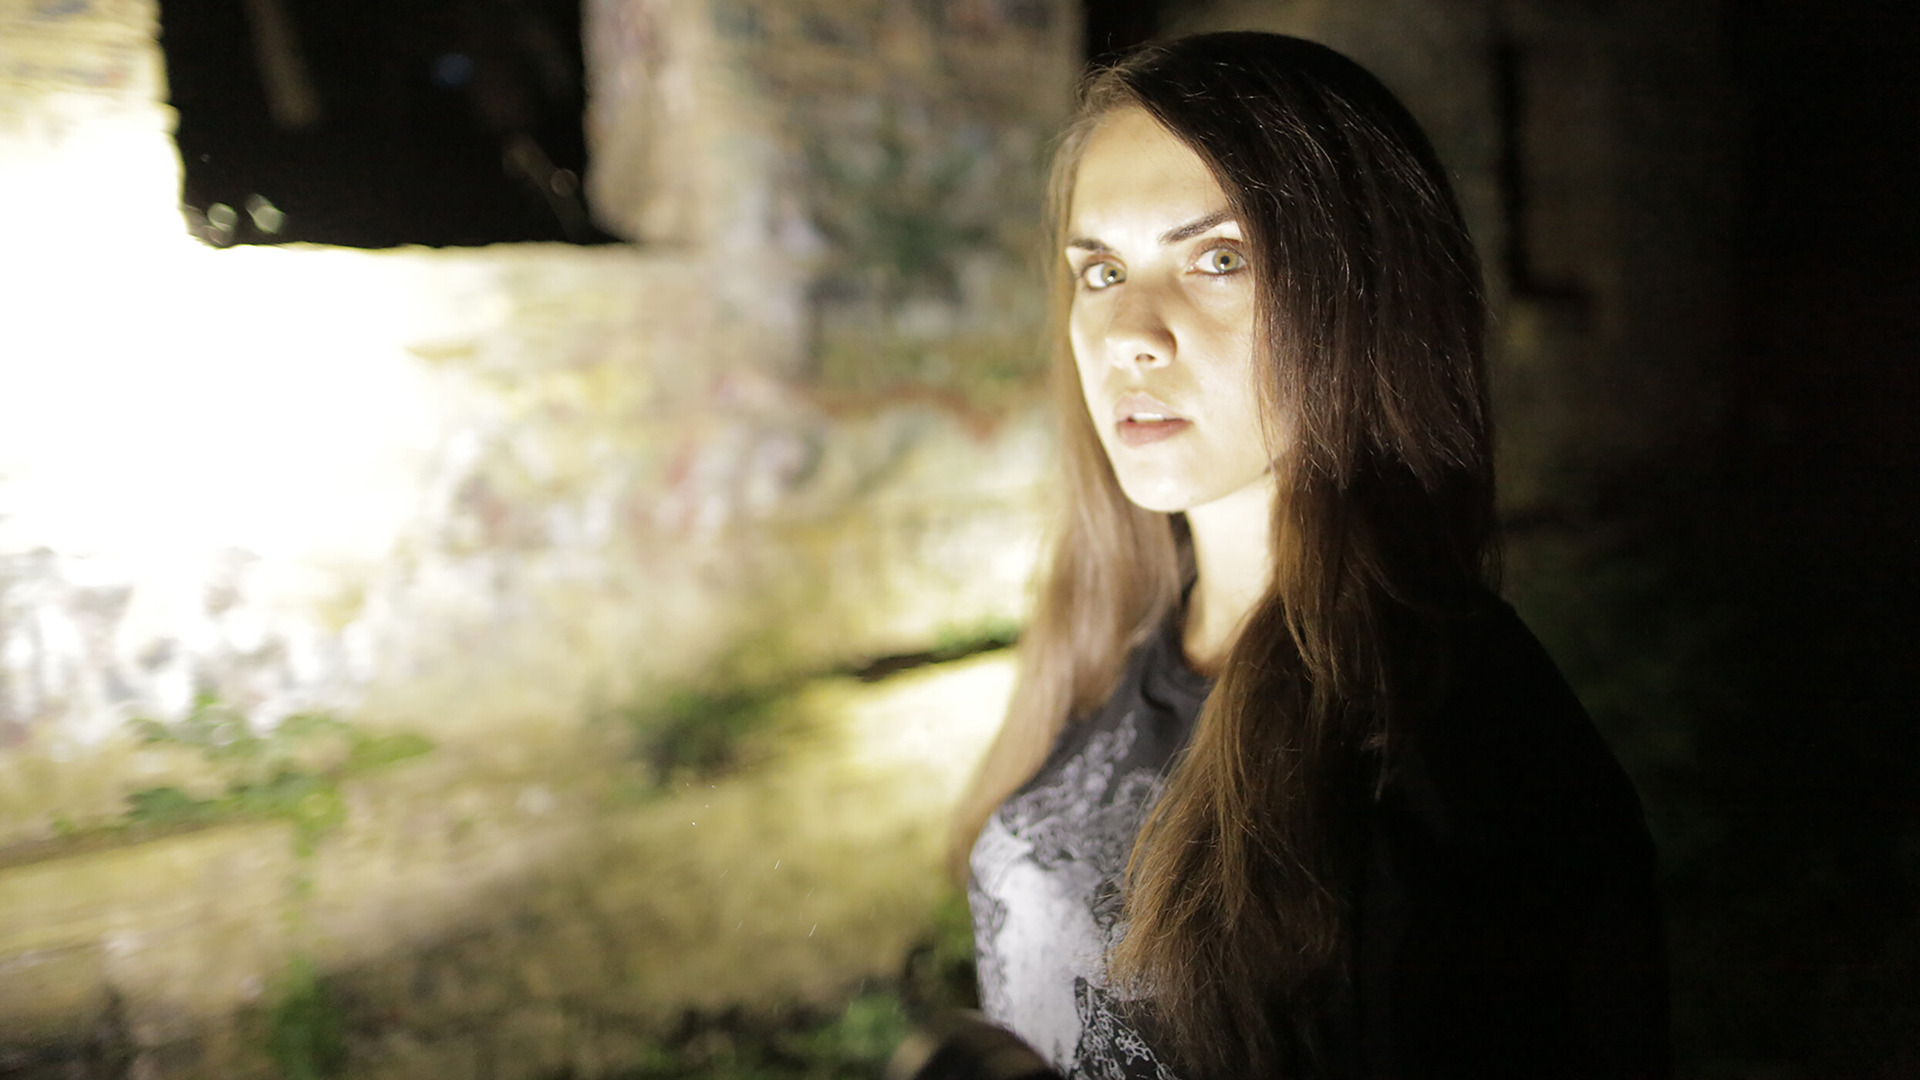 Ghosts of Shepherdstown — s01e03 — She Didn't Have a Face